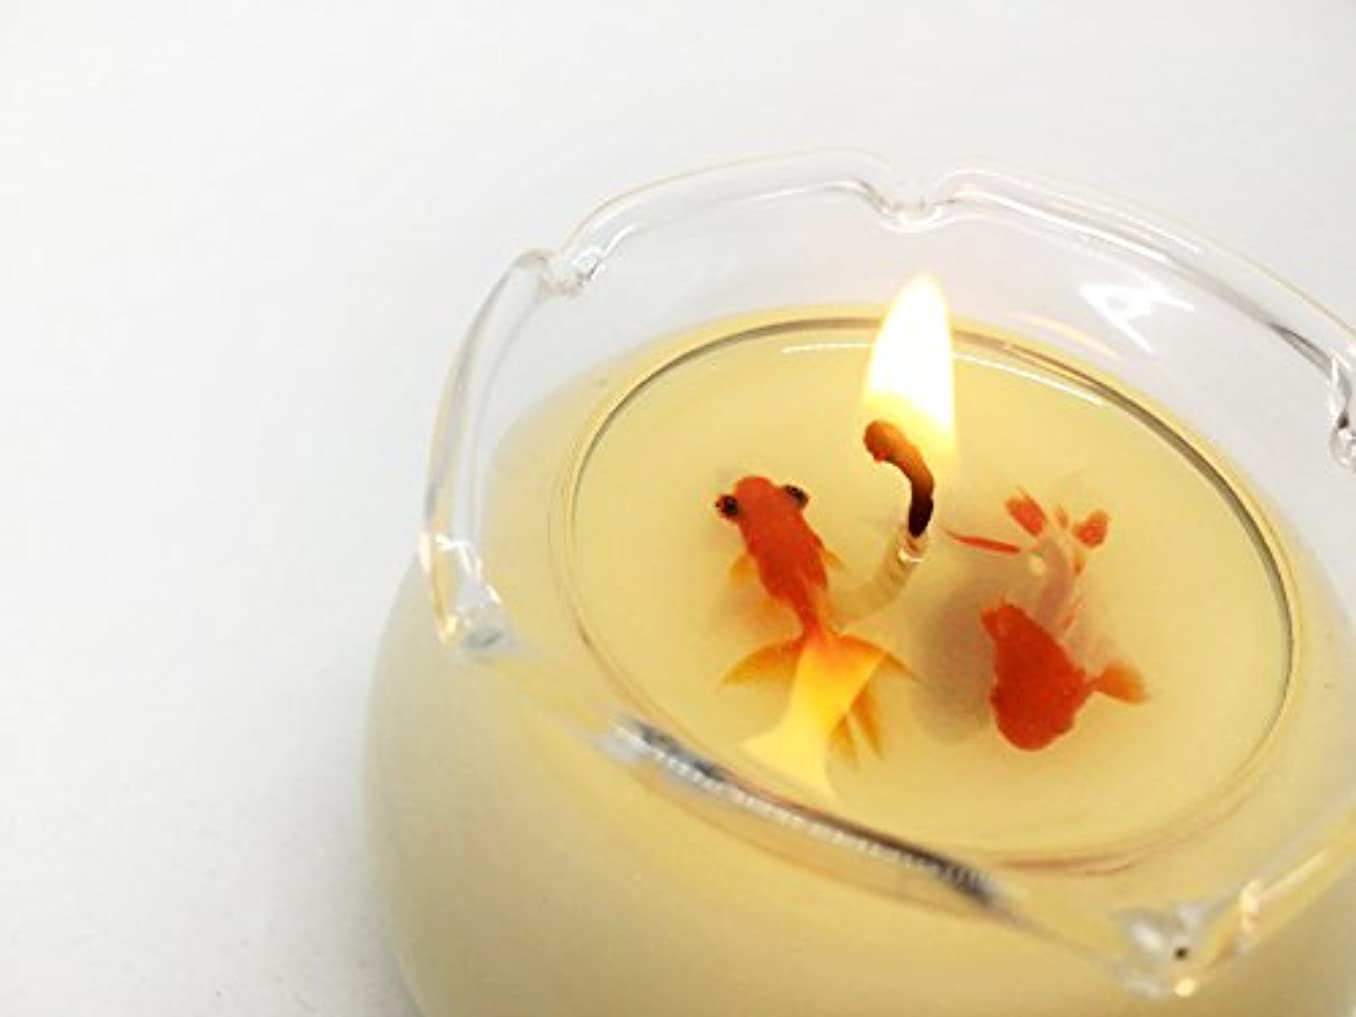 SAFC-spring Soy Aroma Fish Candle spring(梅) SAFC-spring